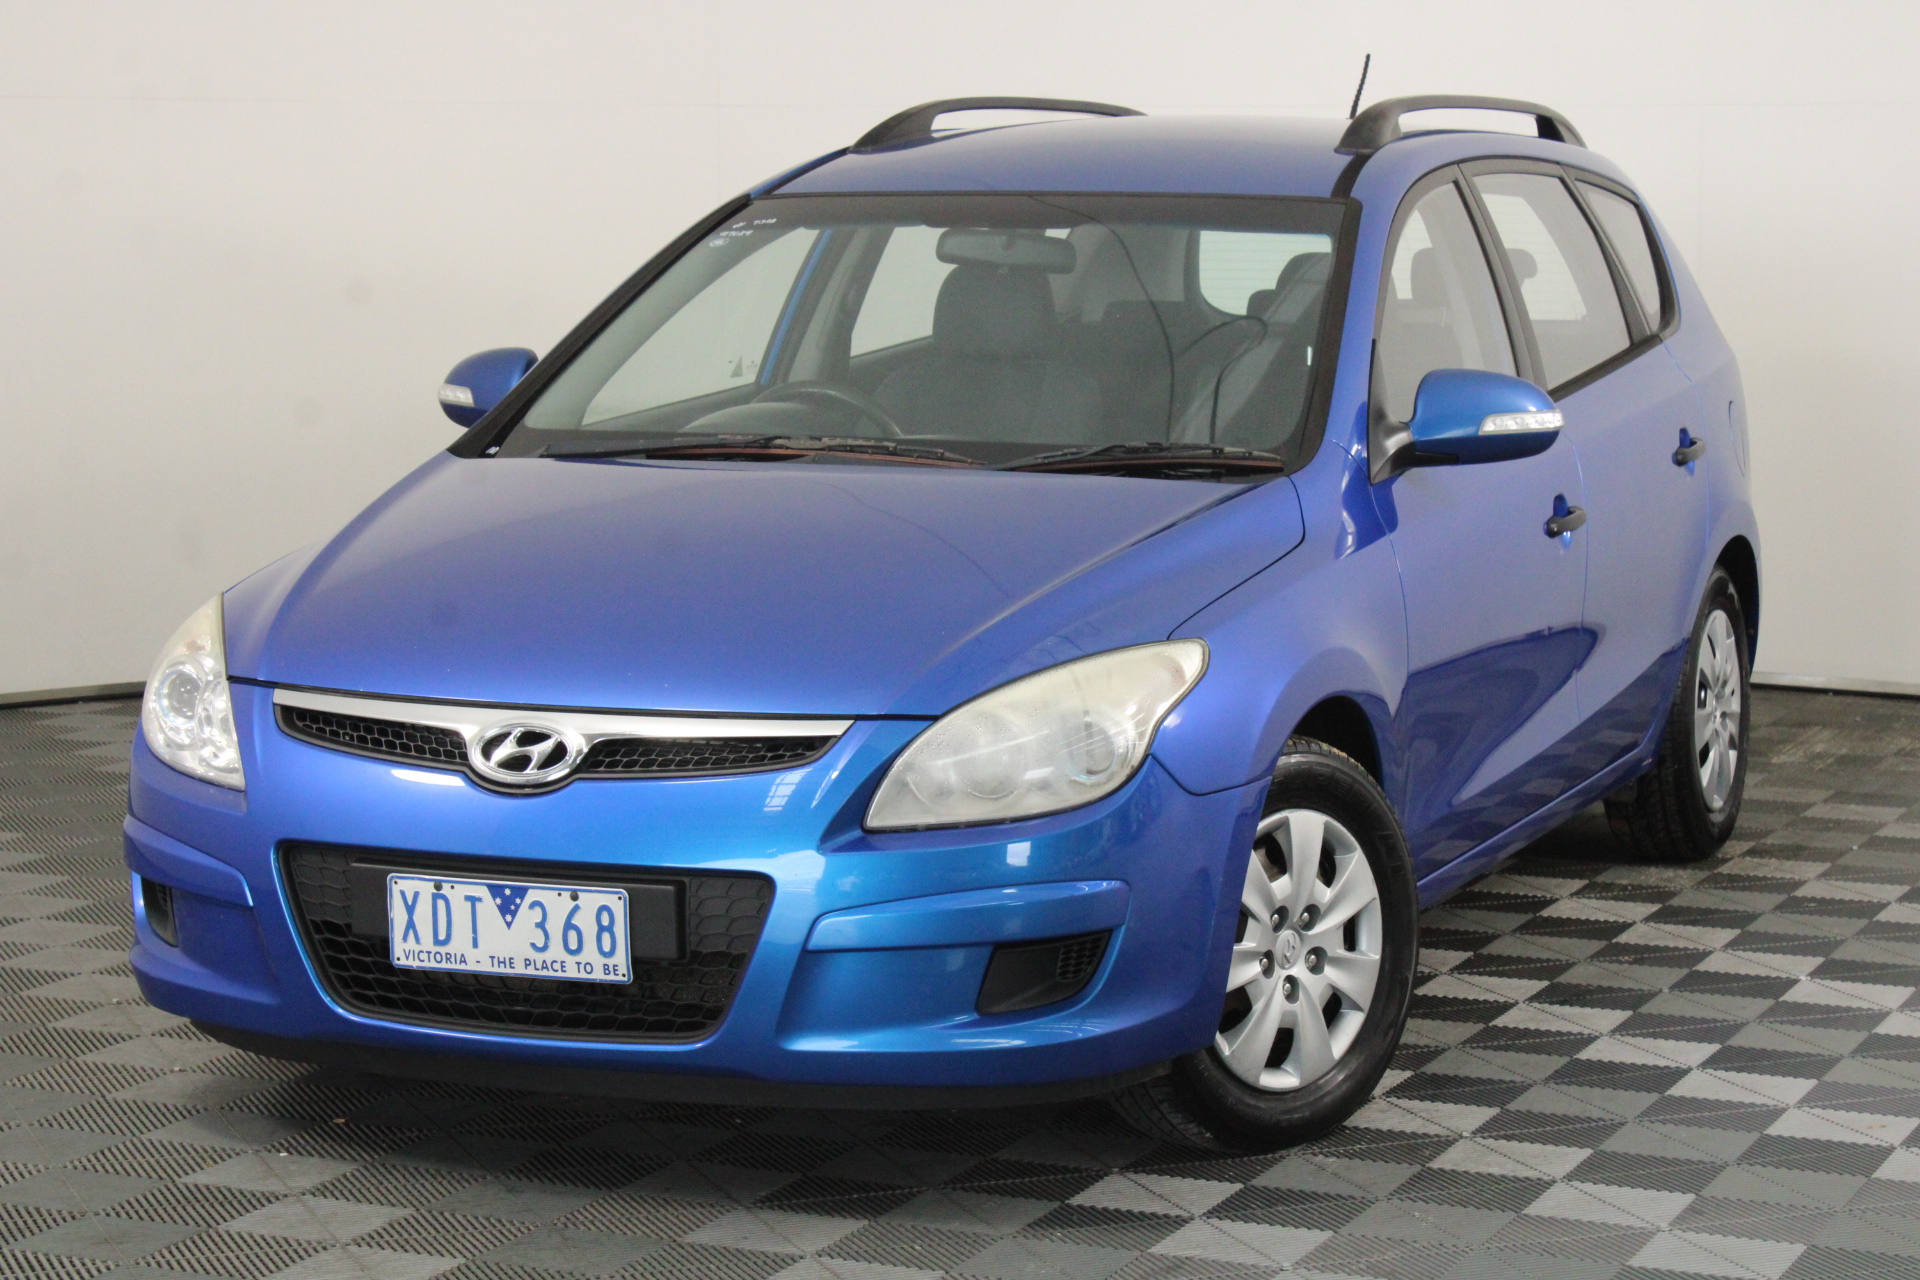 2009 Hyundai i30 cw SX 2.0 FD Manual Wagon